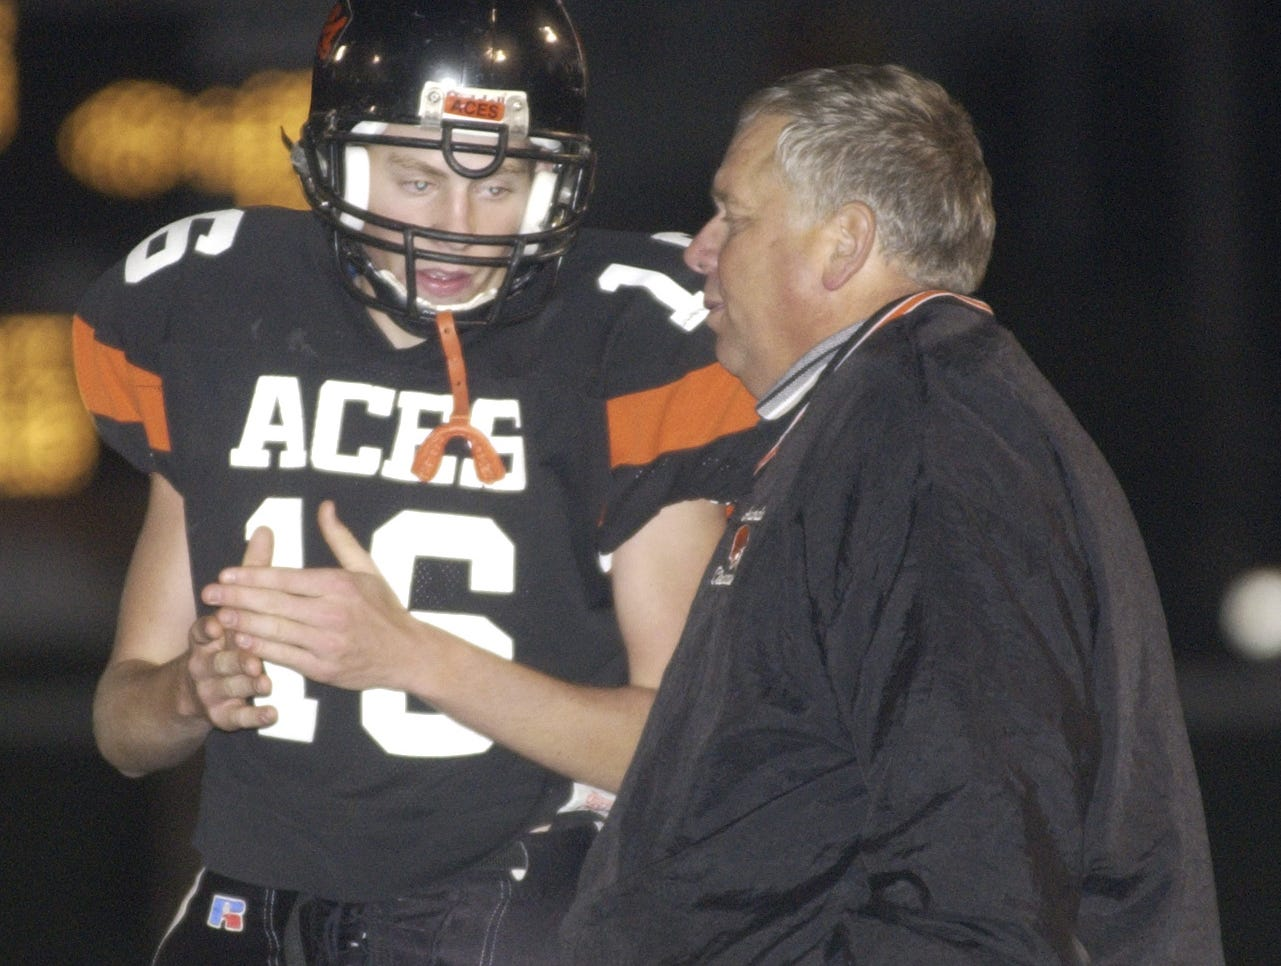 Amanda-Clearcreek's head coach, Ron Hinton, talks with Kyle McCalla during the third quarter of the game Friday night. The Aces defeated Hamilton Twp. 68-7.